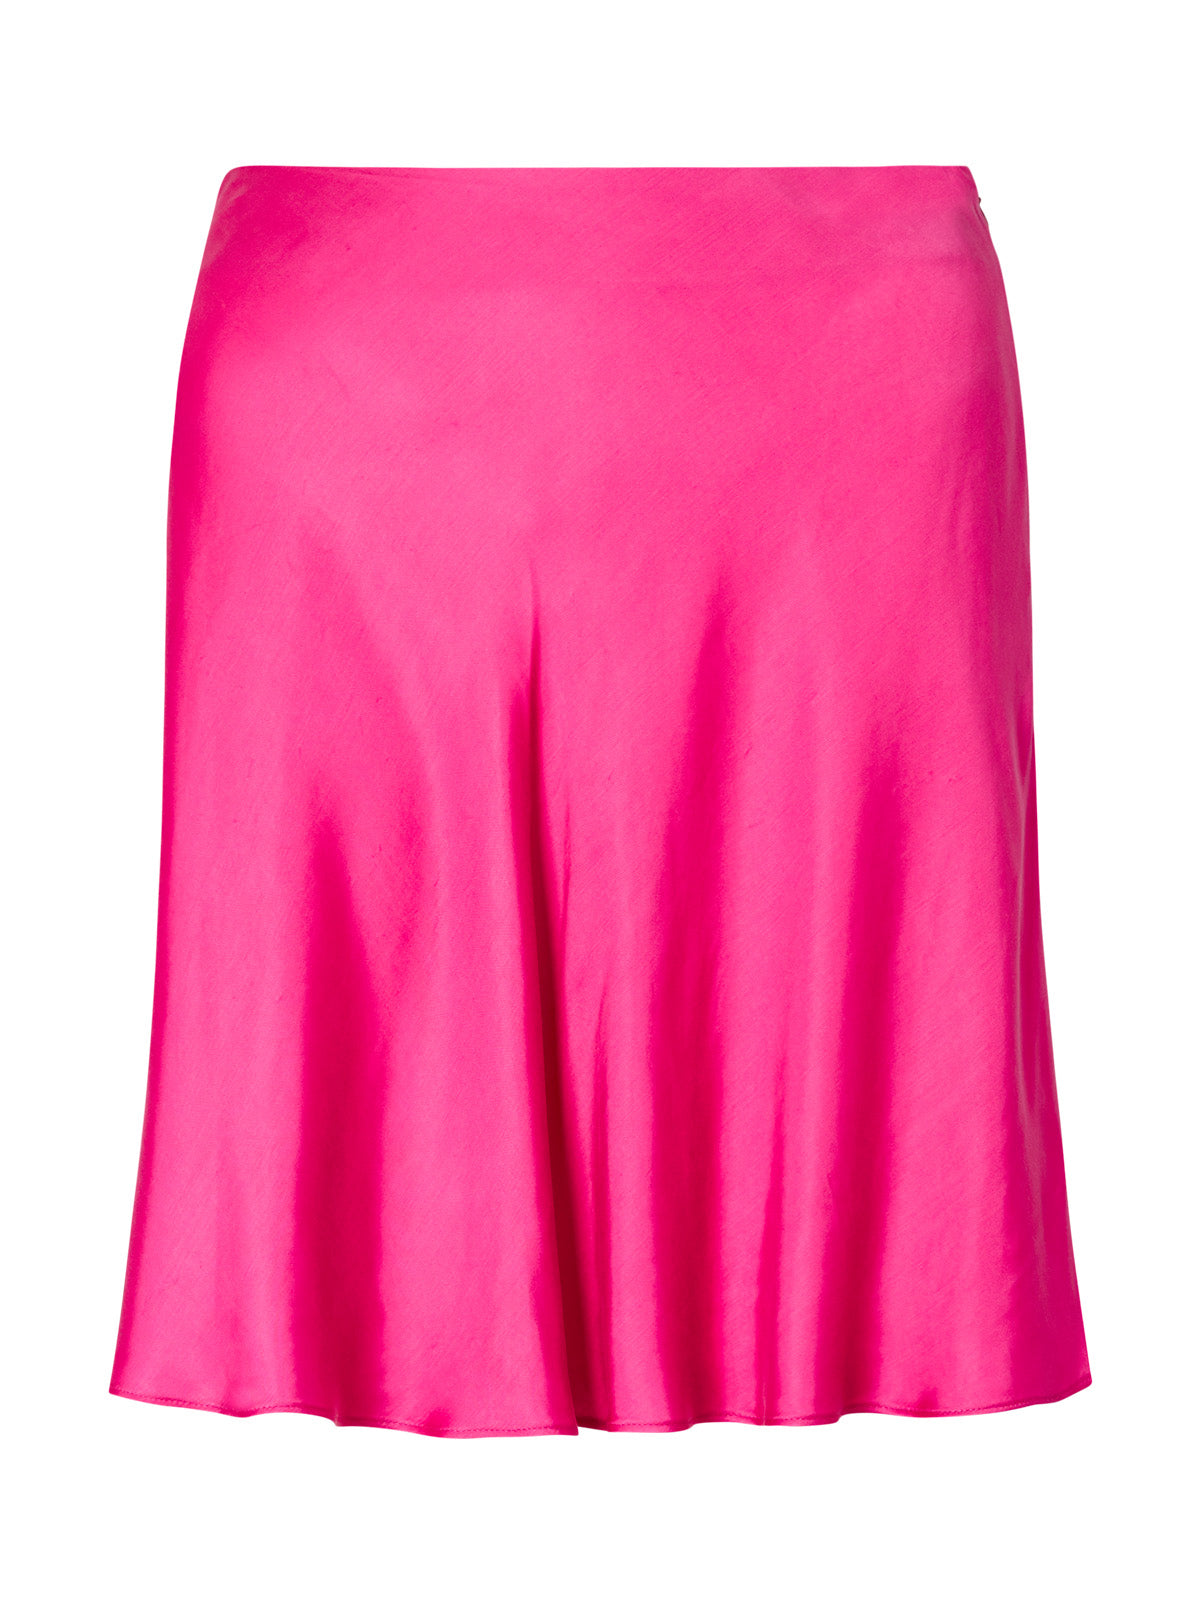 Michaela Pink Mini Skirt by KITRI Studio